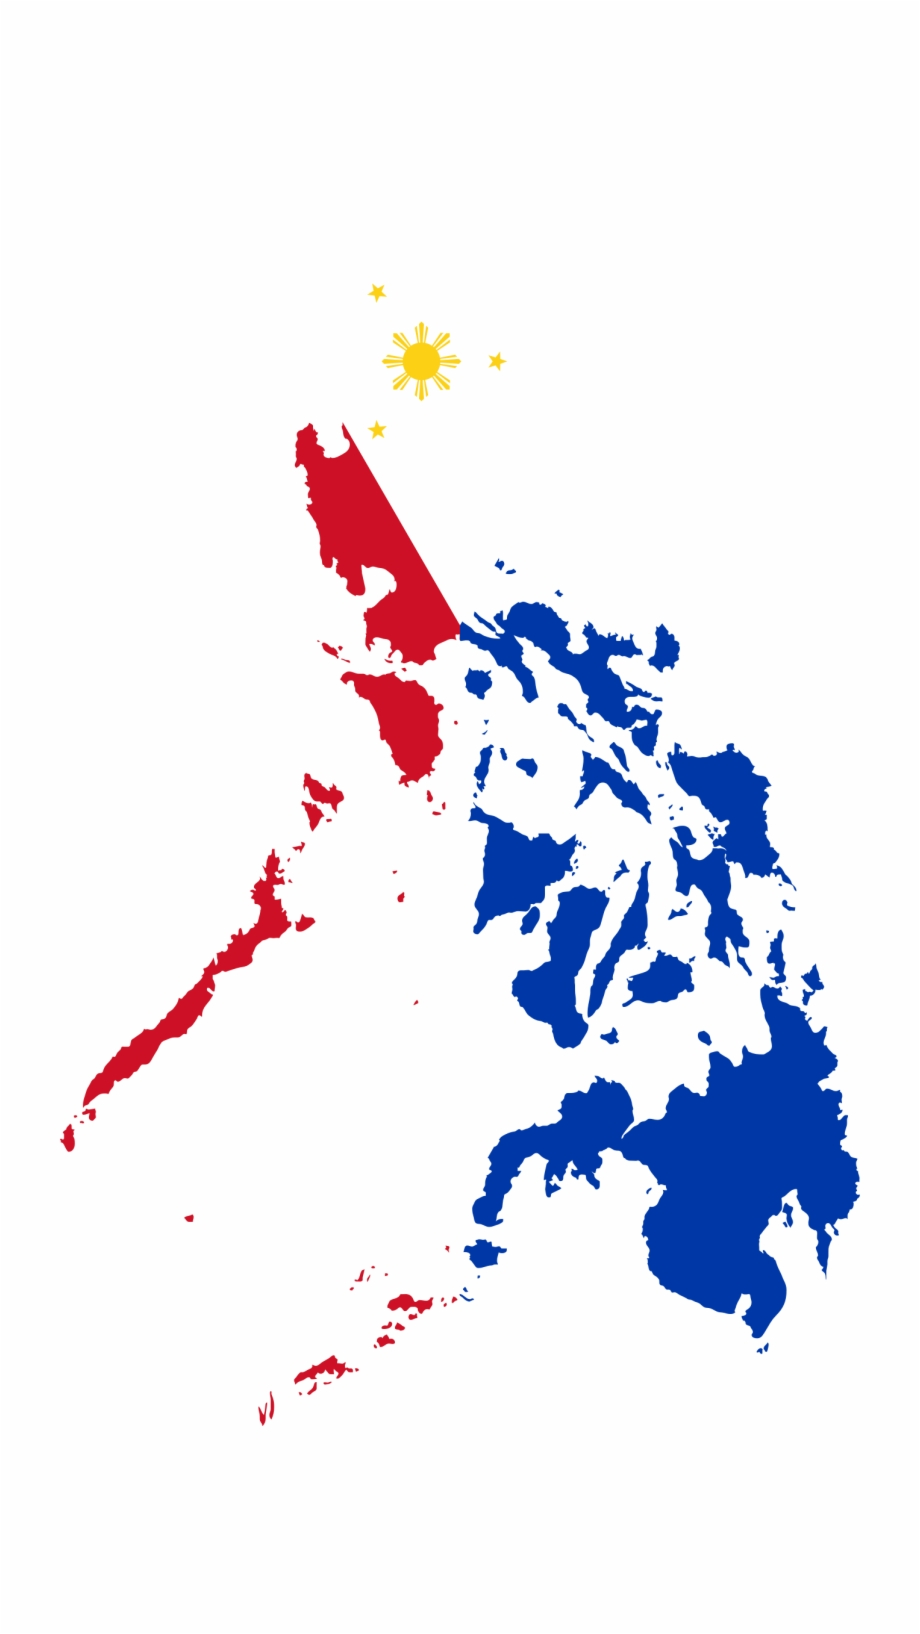 This Free Icons Png Design Of Philippines Map Flag.